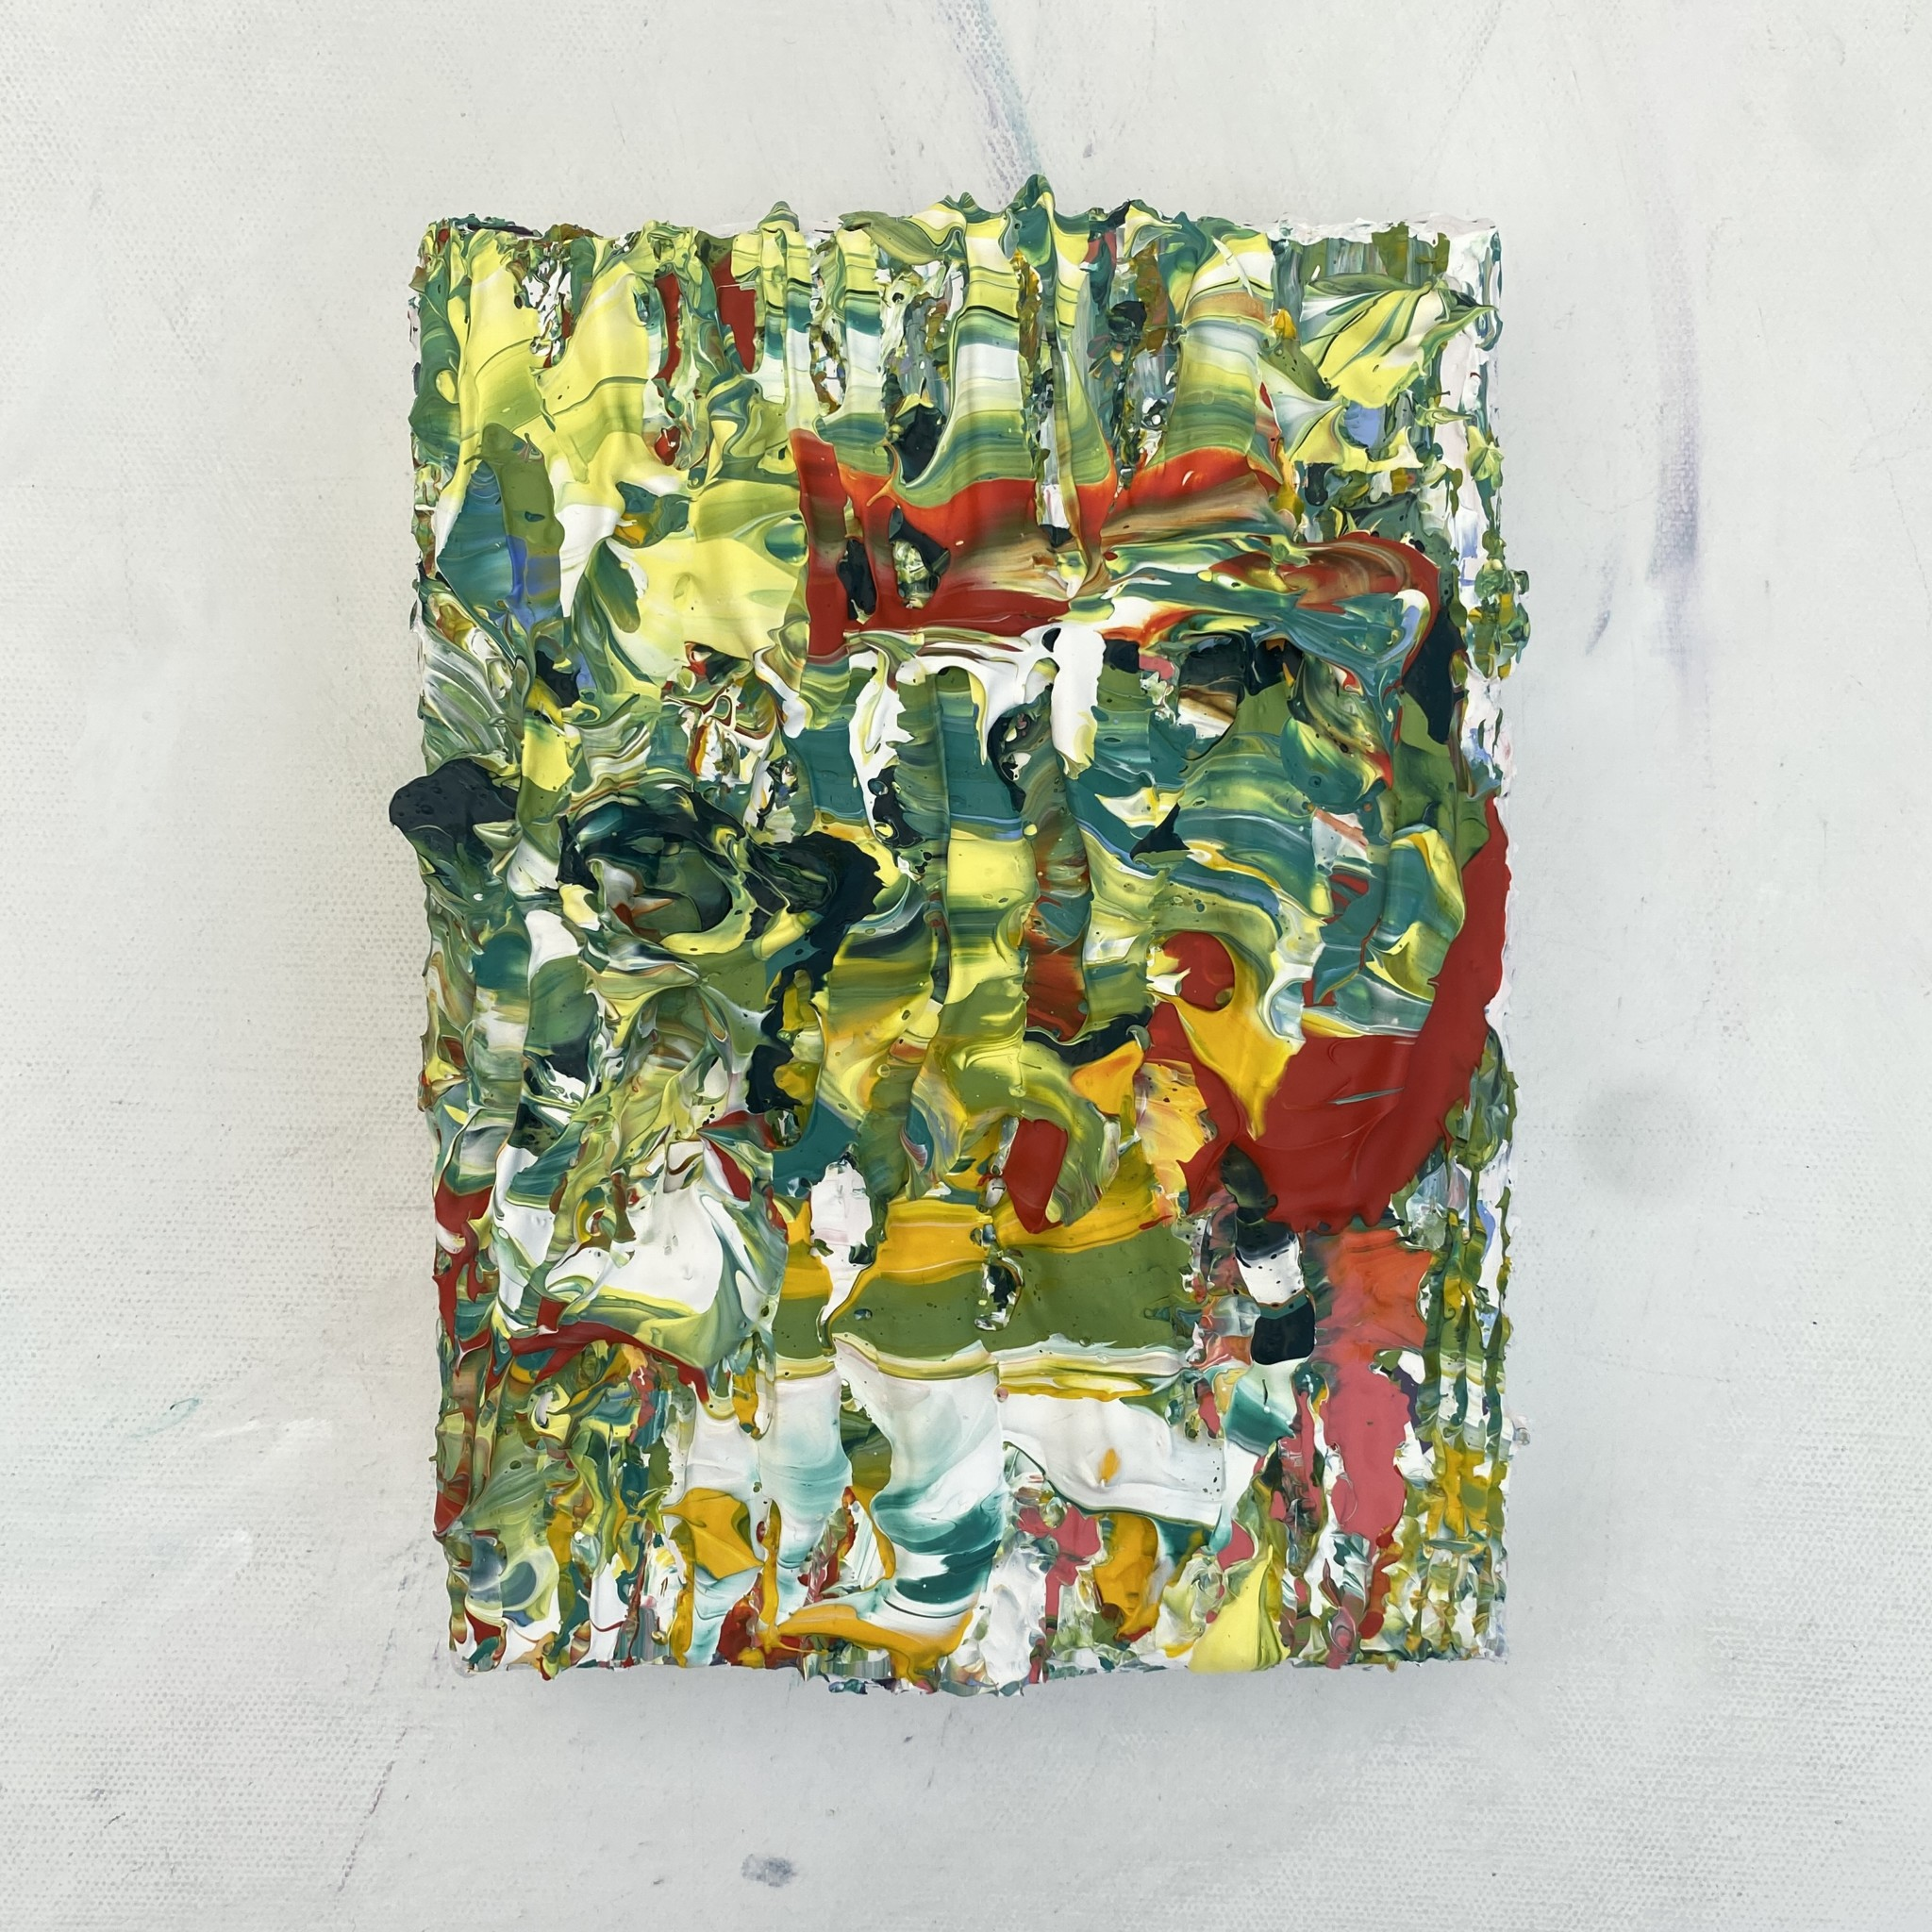 Gallery View of Rainforest mini original abstract textured painting by Emily Duchscherer Kirk.